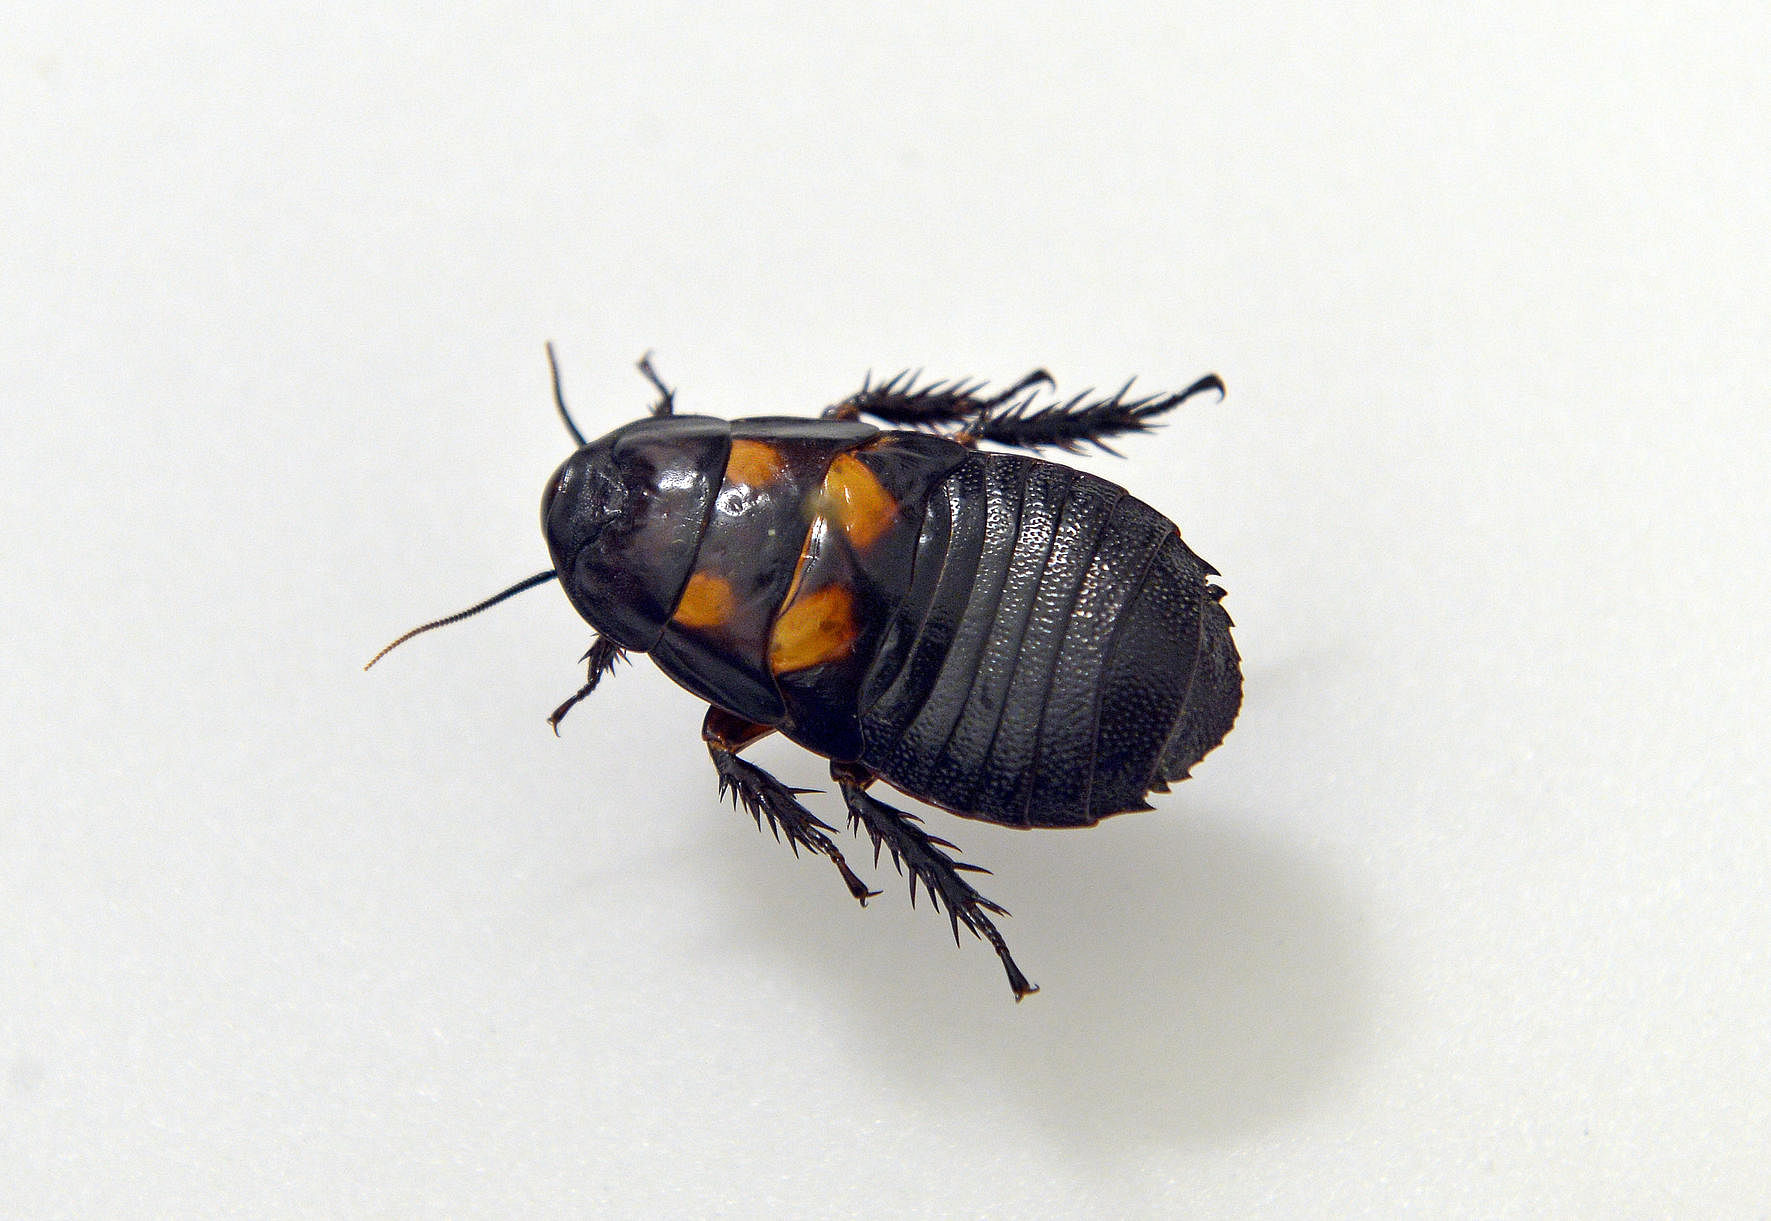 Four species of cockroaches found in Singapore, Environment News ...